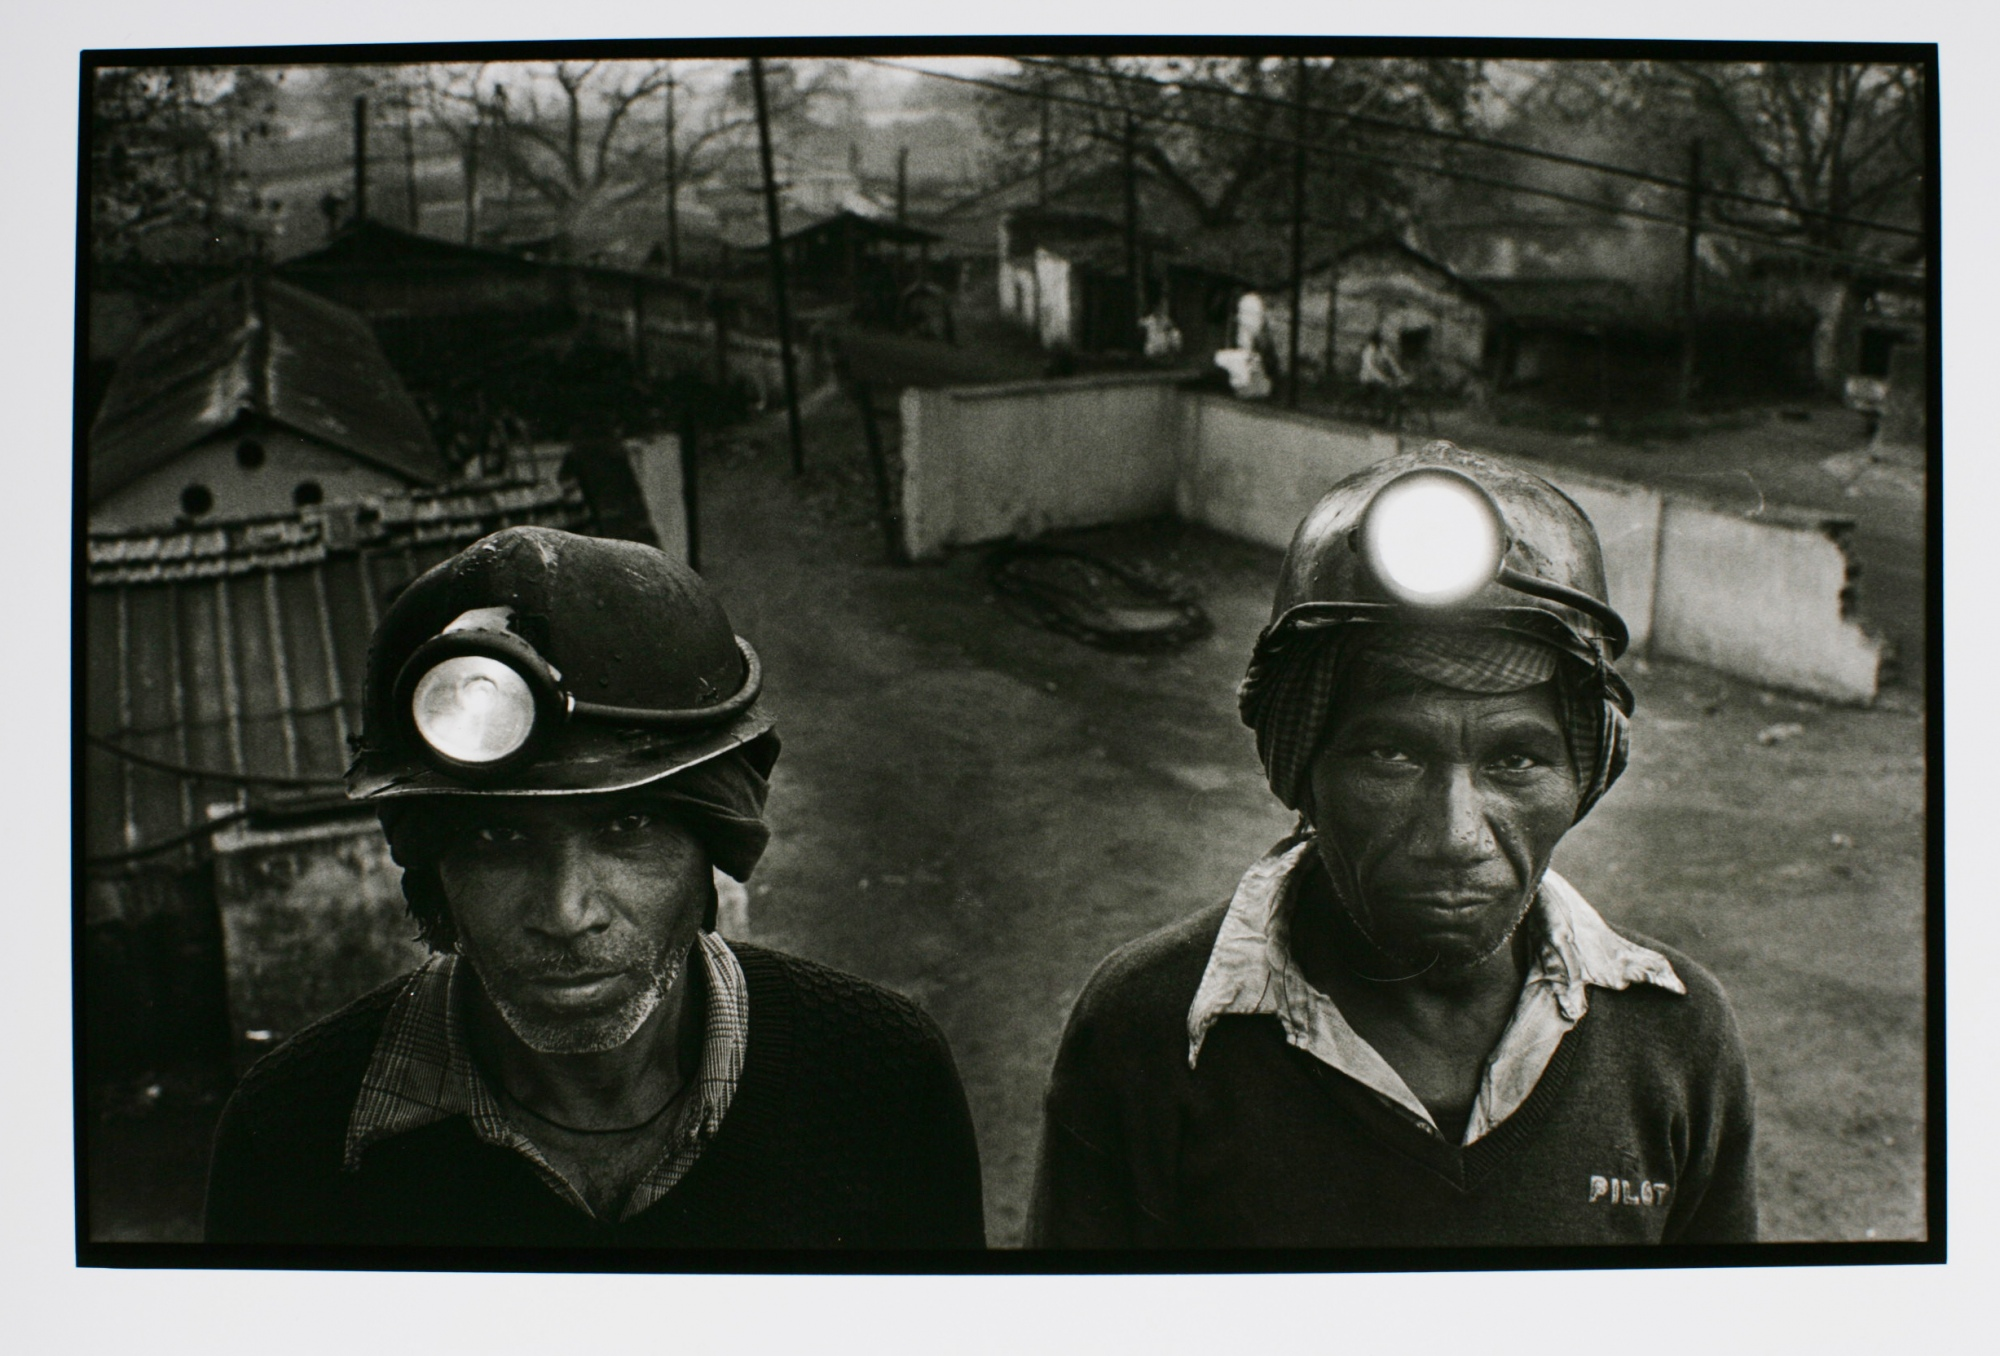 Miners. Bihar India. Learning, Courses, film photography, Documentary Photography workshops, Darkroom Techniques, Londom Photography workshops